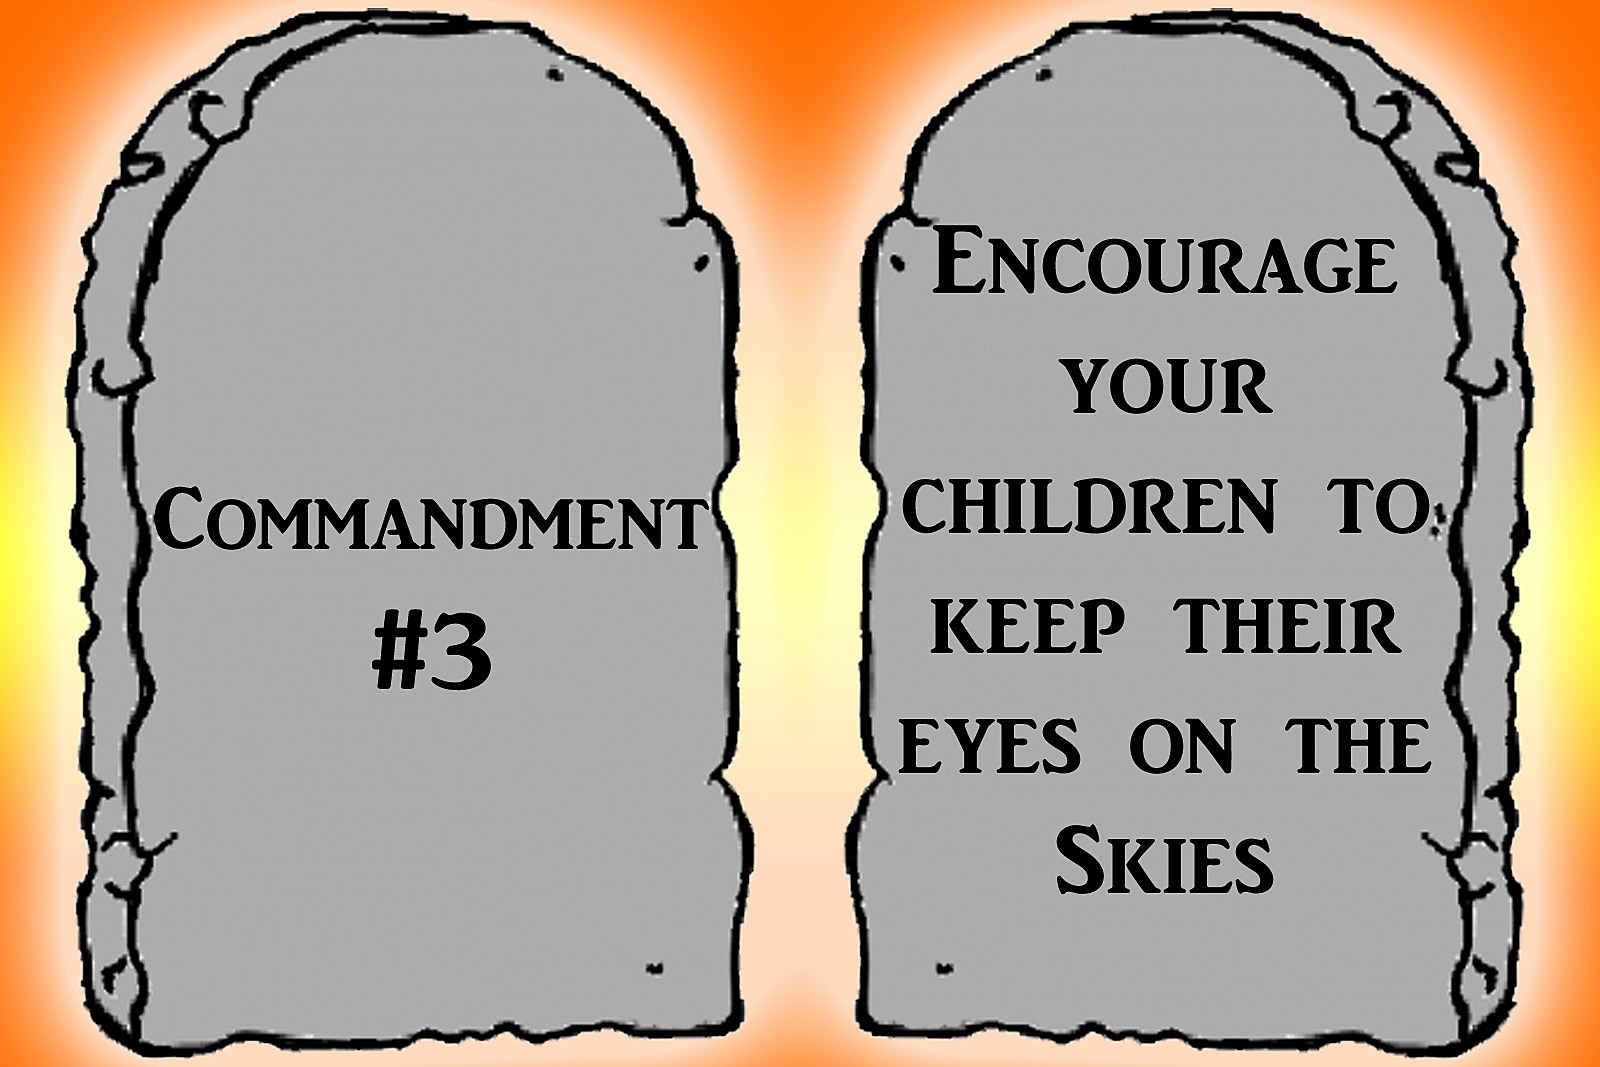 Commandment 3